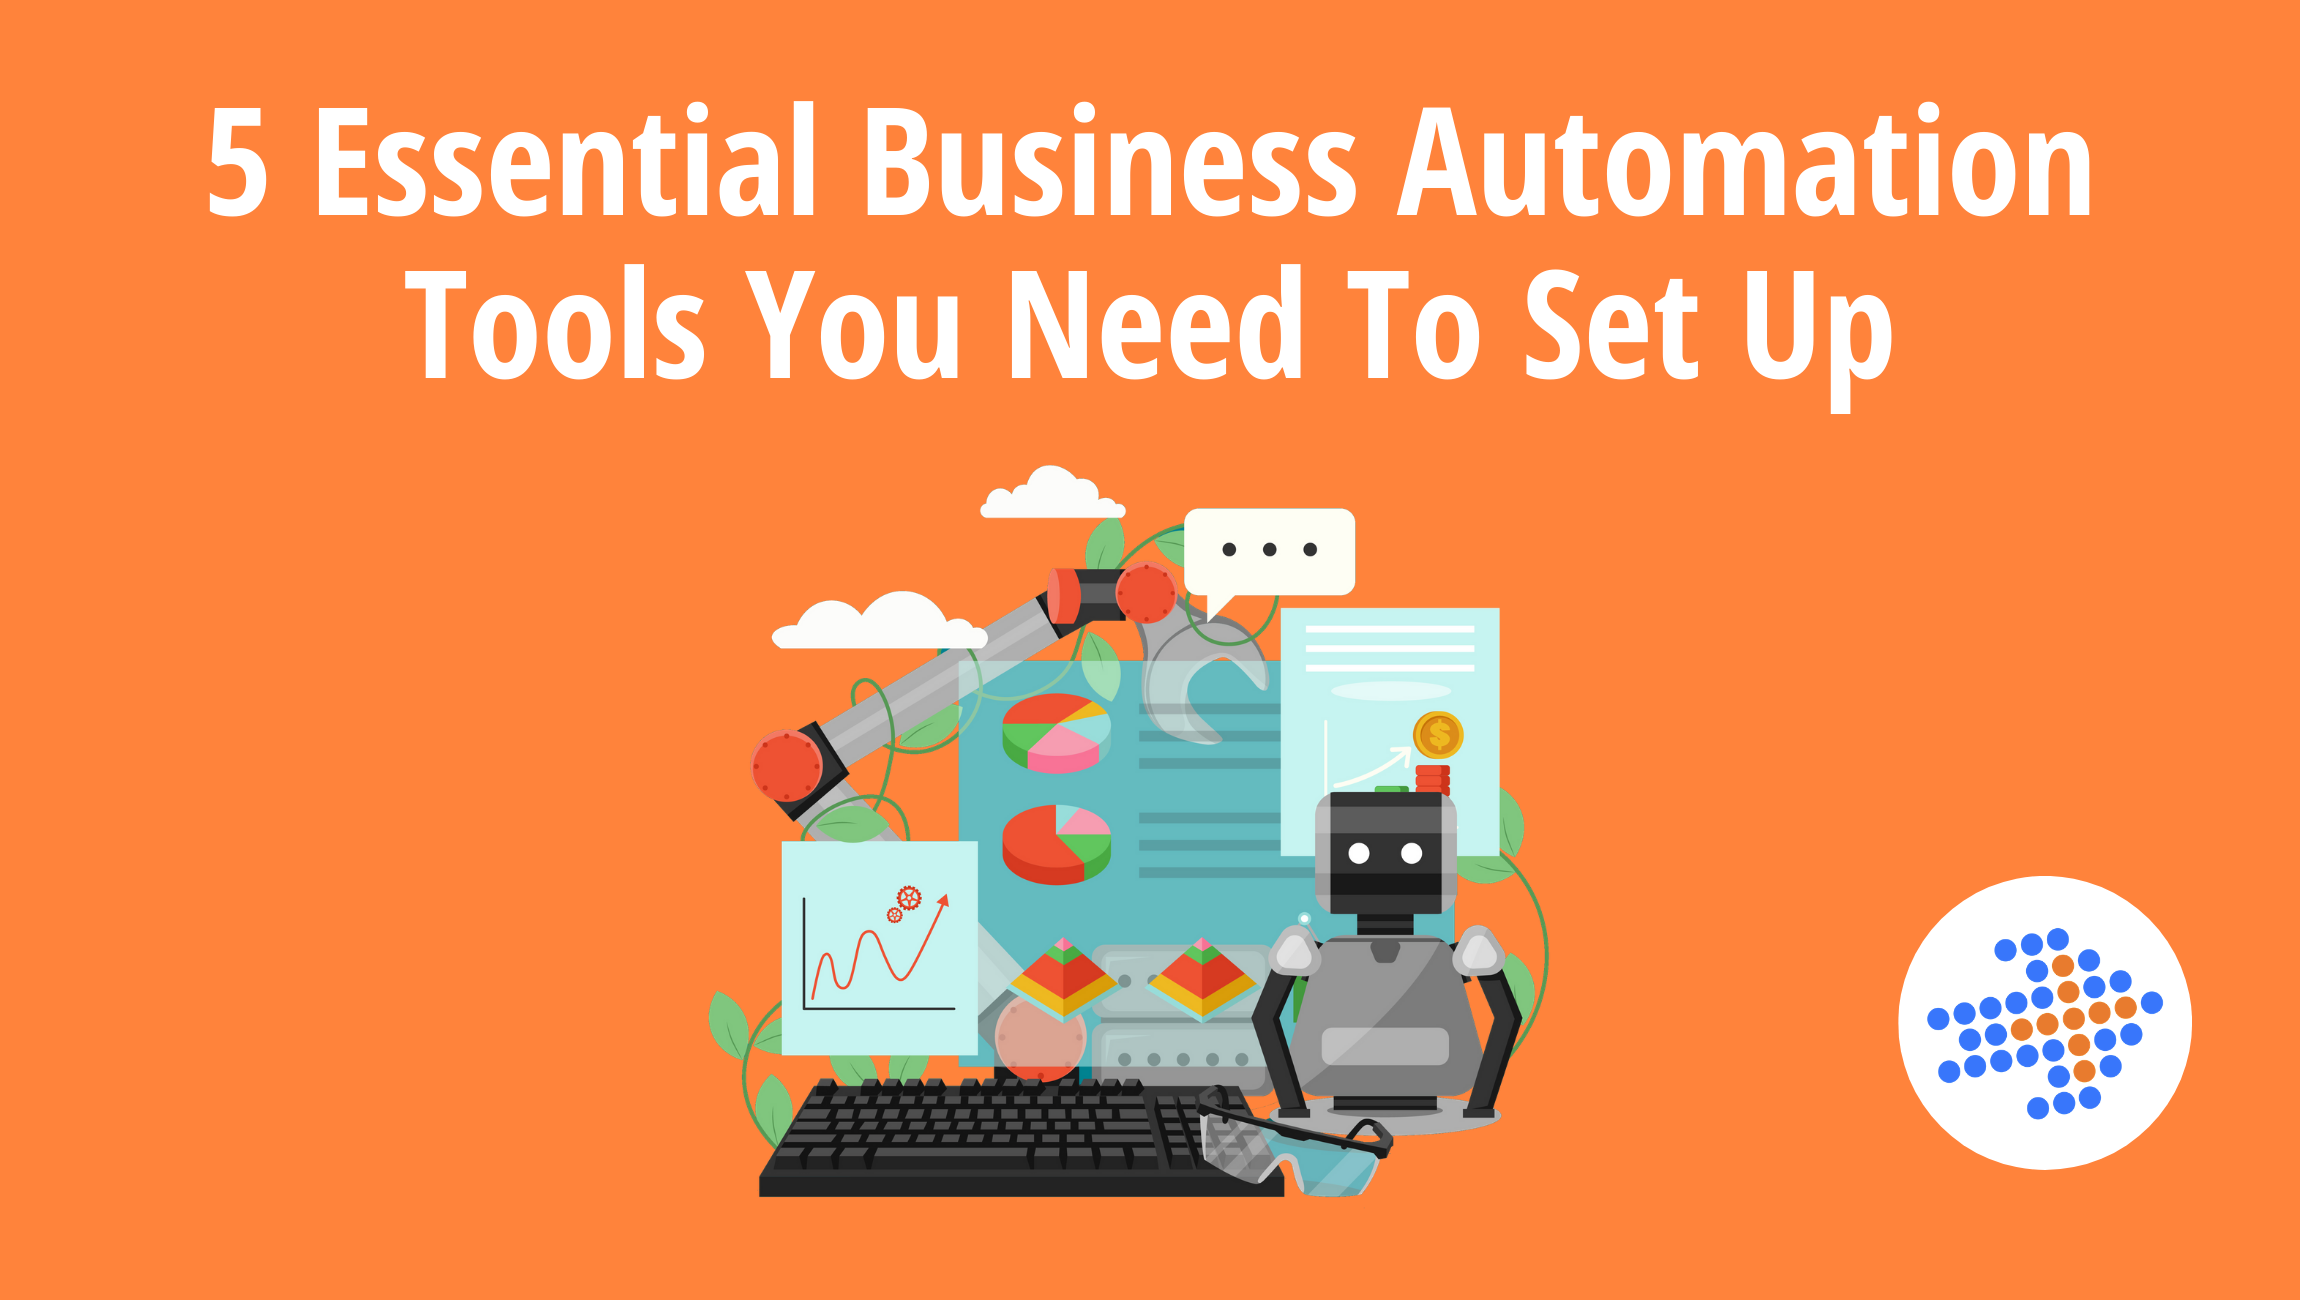 5 Essential Business Automation Tools You Need To Set Up